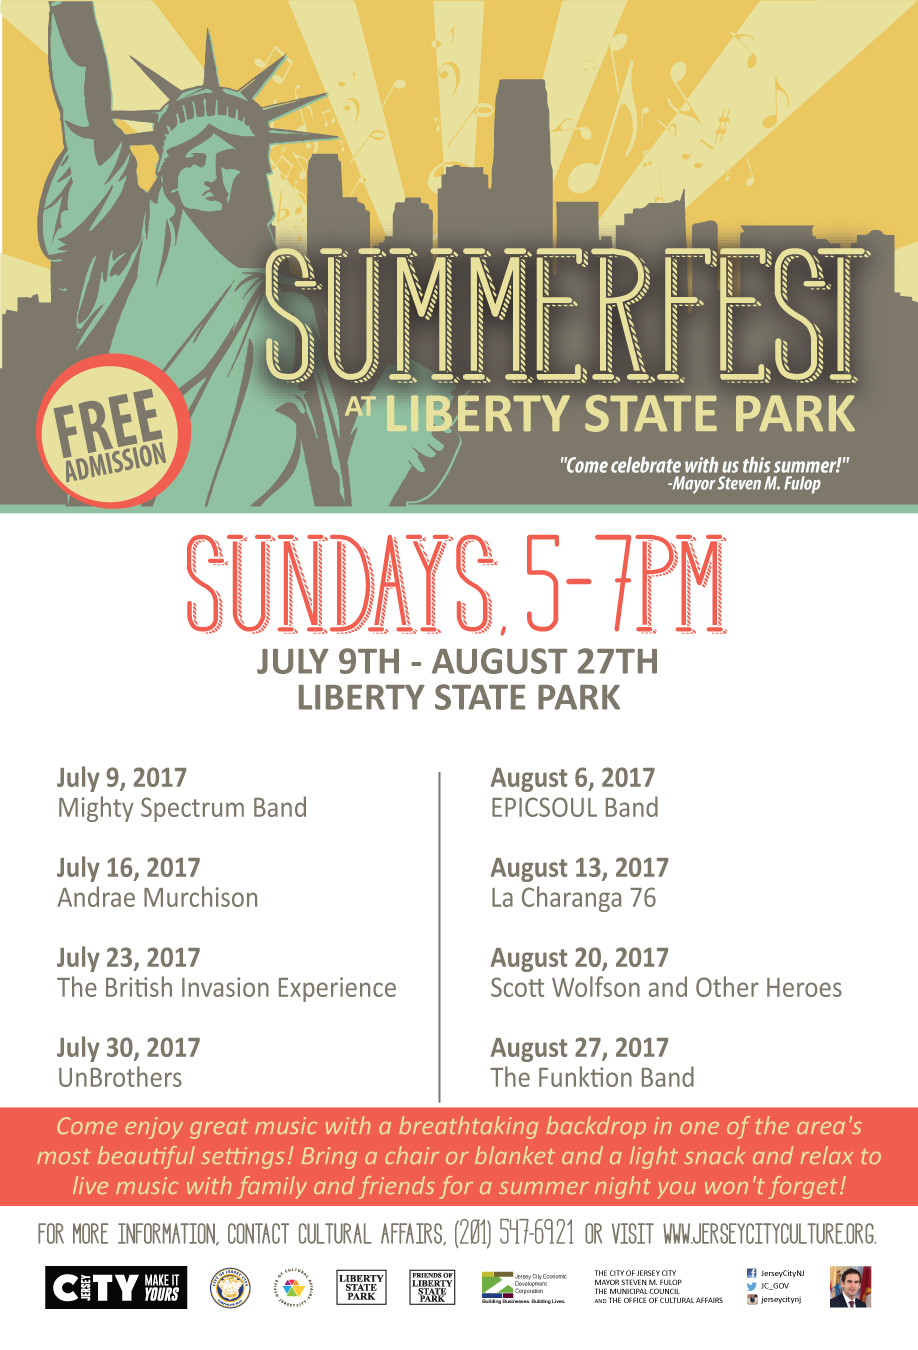 Summerfest-postcard-sunday.jpg